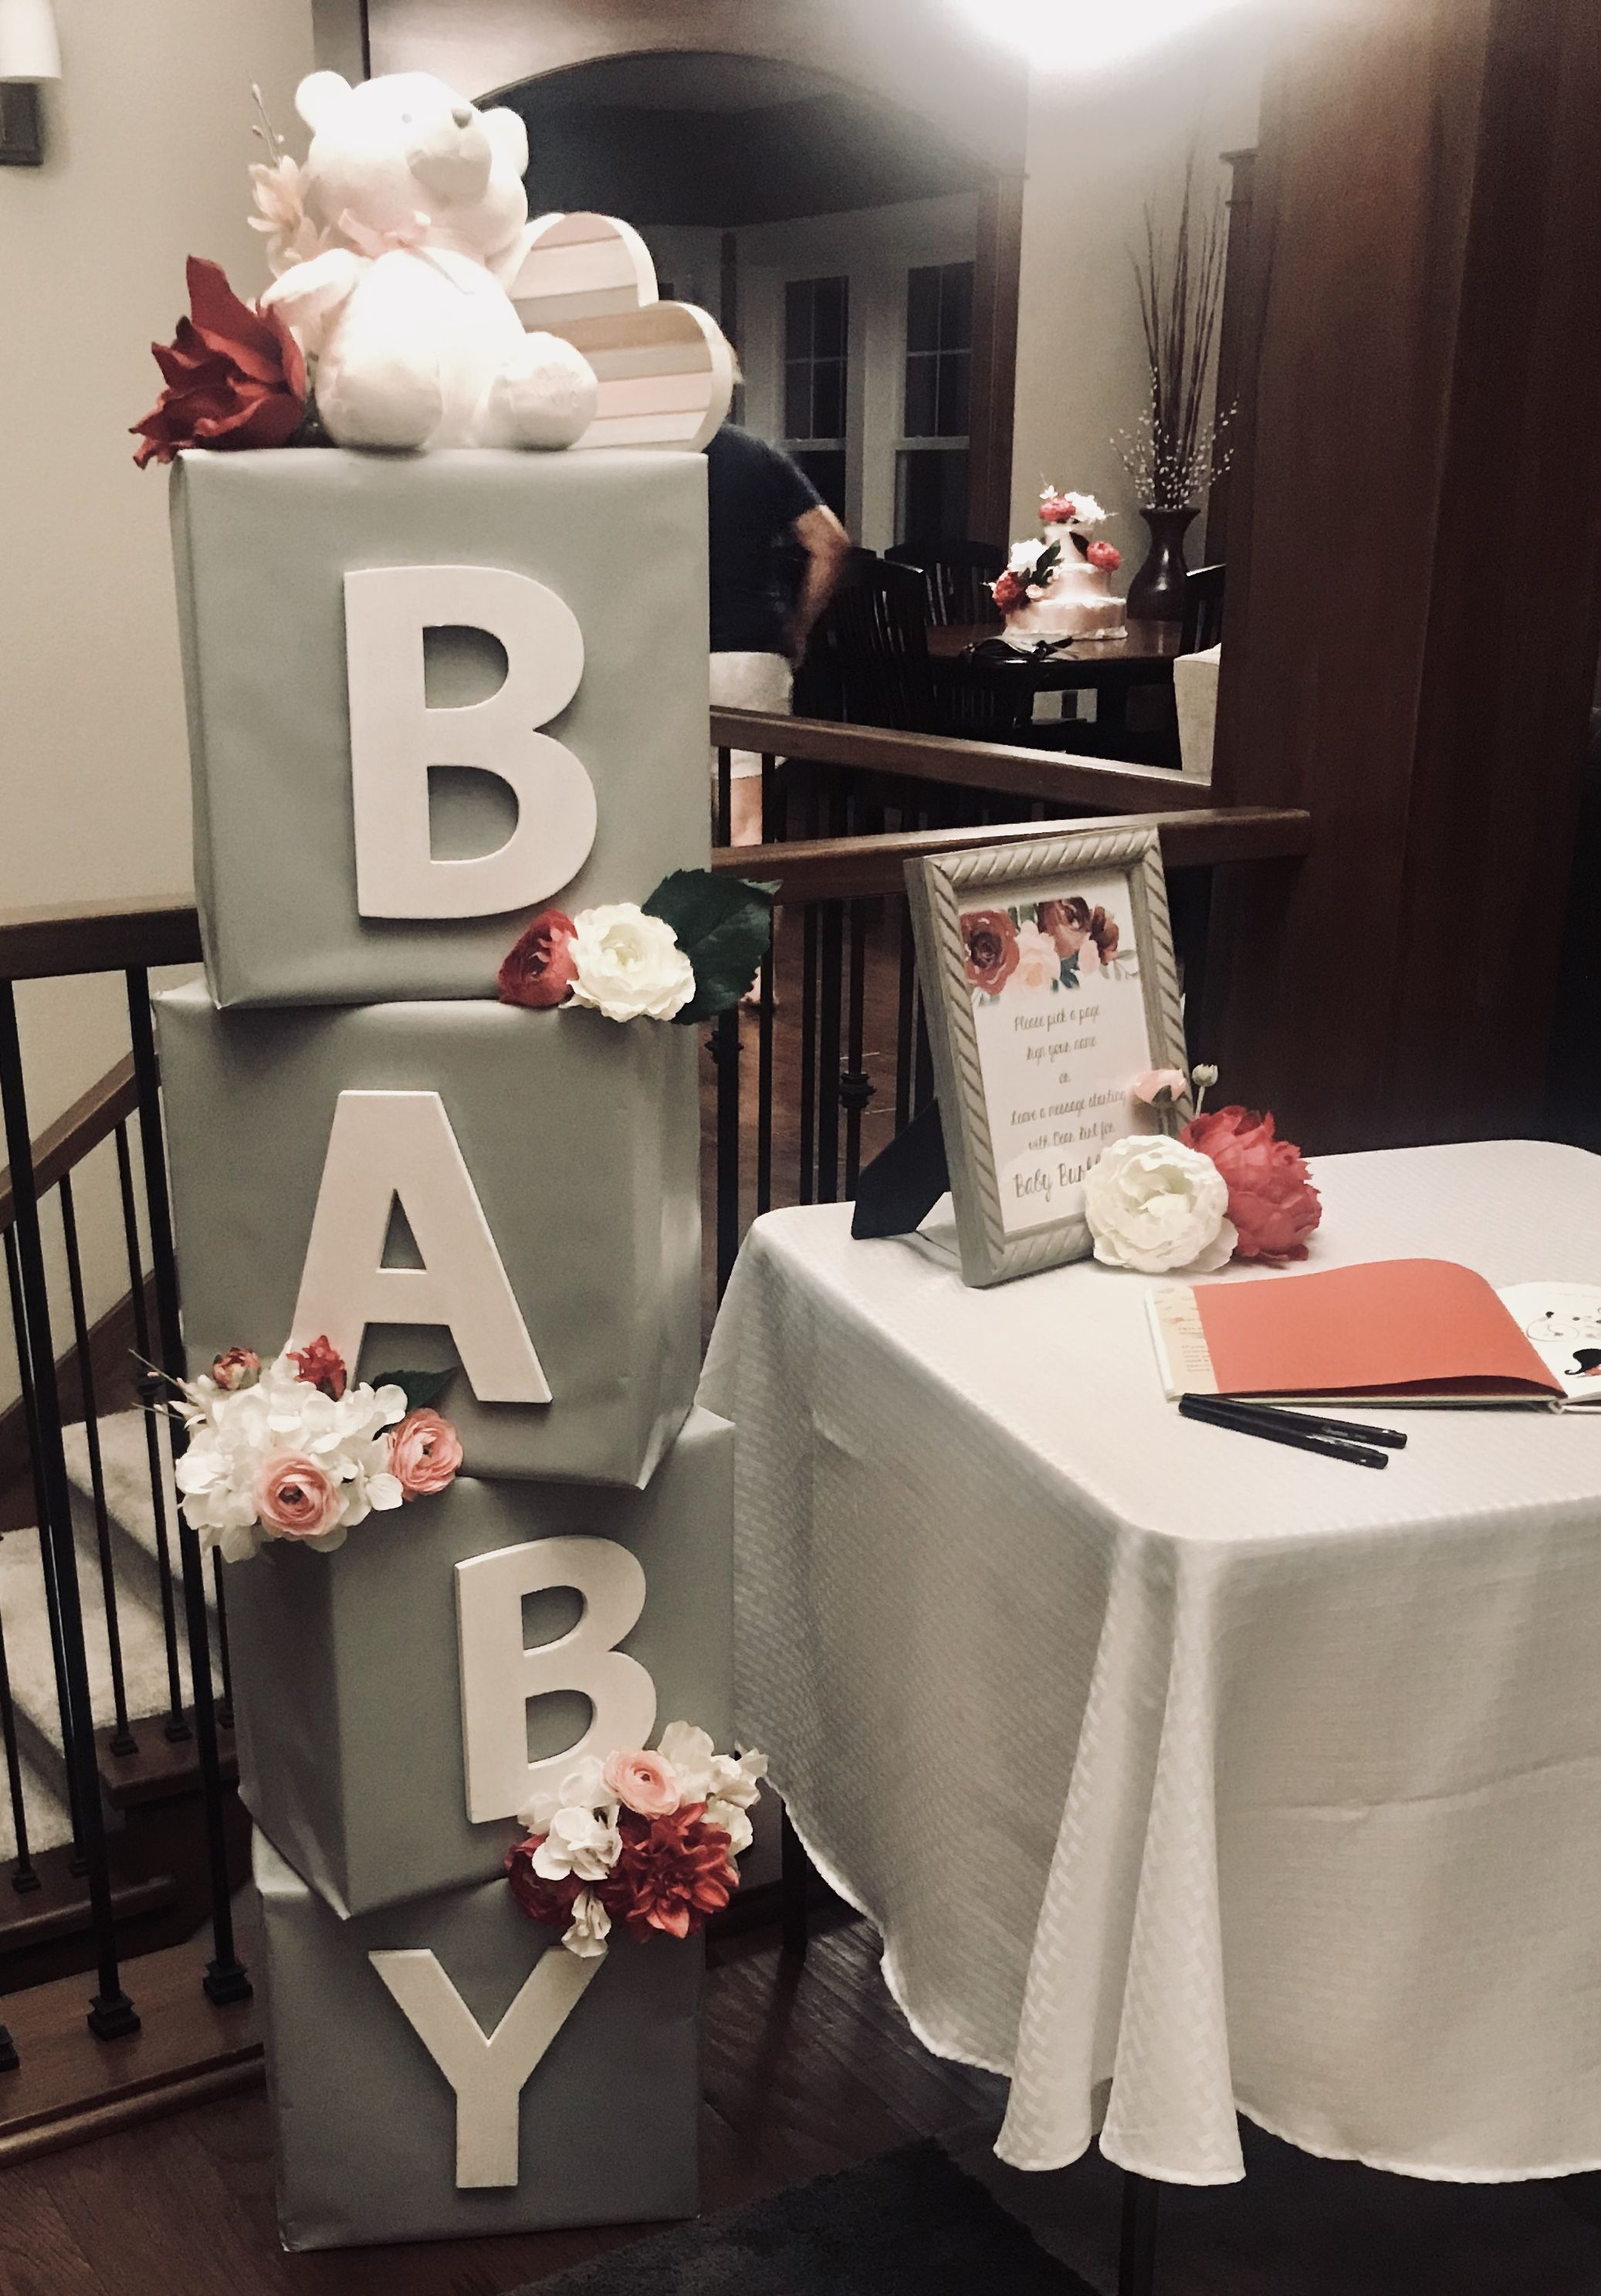 Baby Shower Decor Baby Blocks Floral Baby Shower Decor Floral